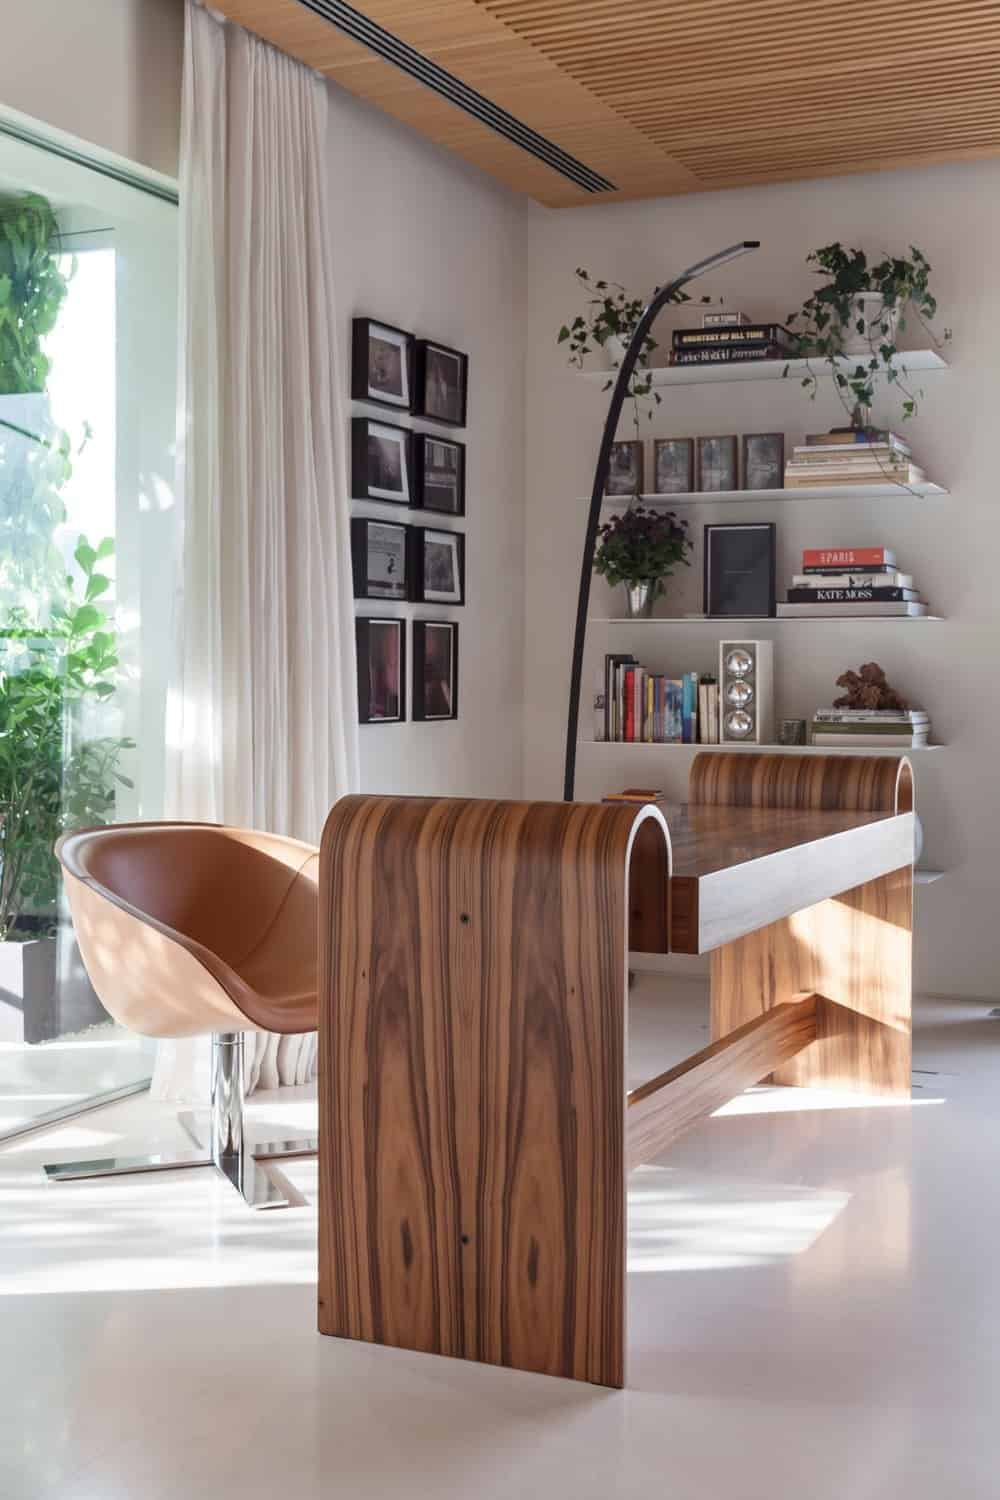 A serene home office with white flooring and walls adorned by gallery frames. It boasts a stylish wooden desk that complements the round back chair along with floating shelves filled with books and potted plants.